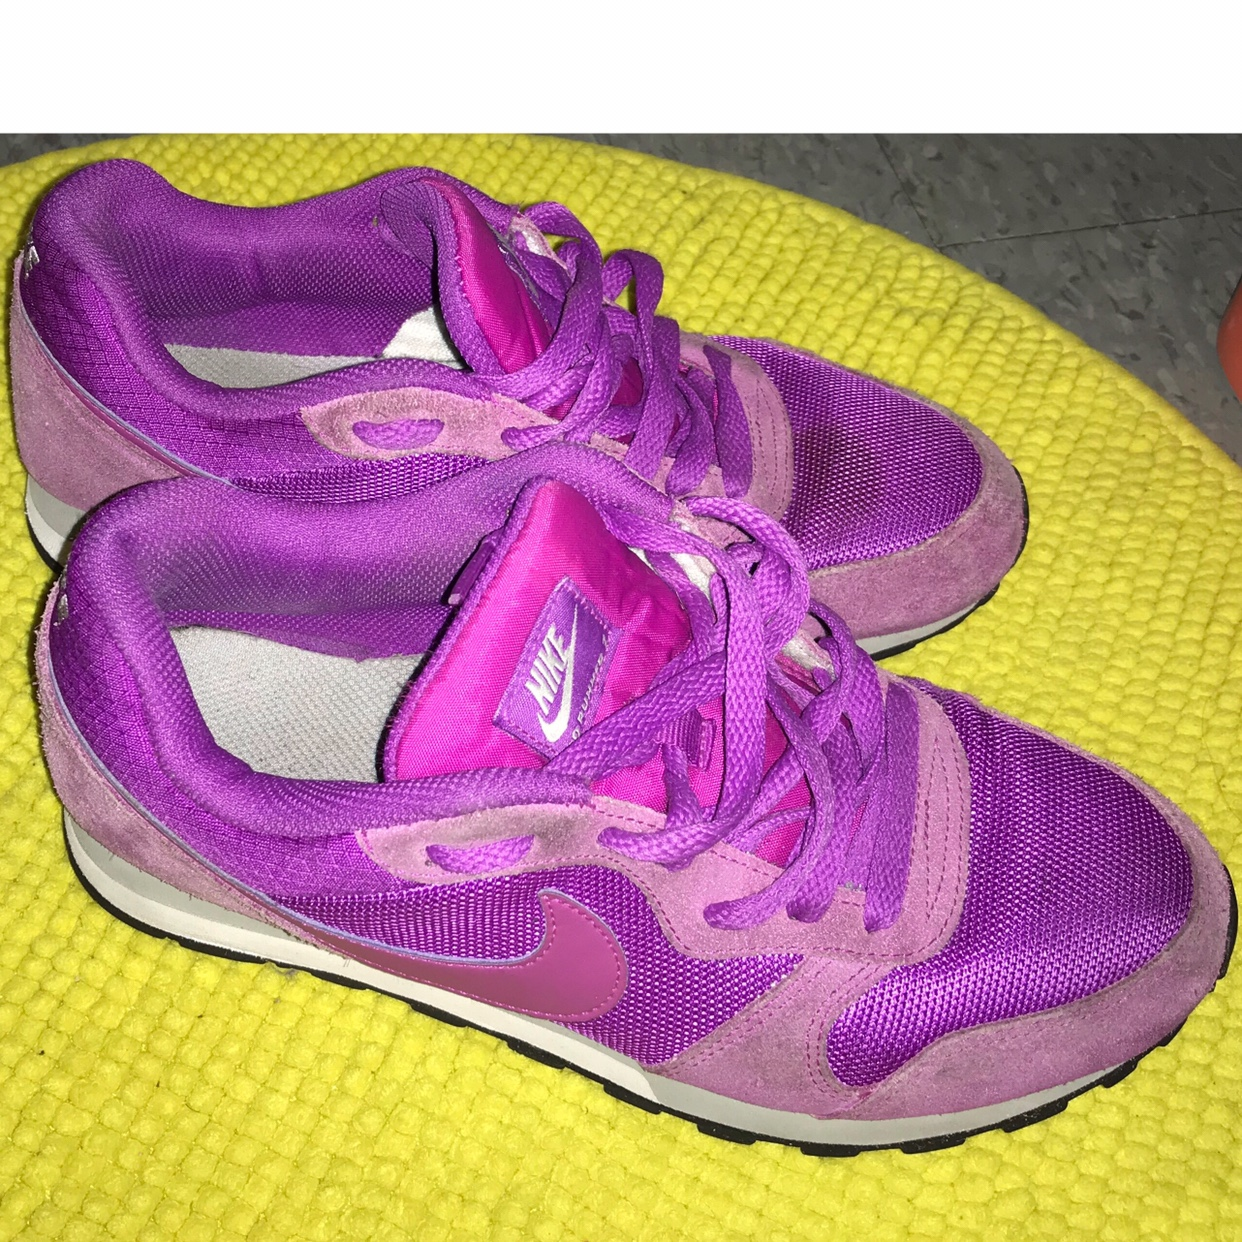 Nike MD runner 2 - used Small stain on